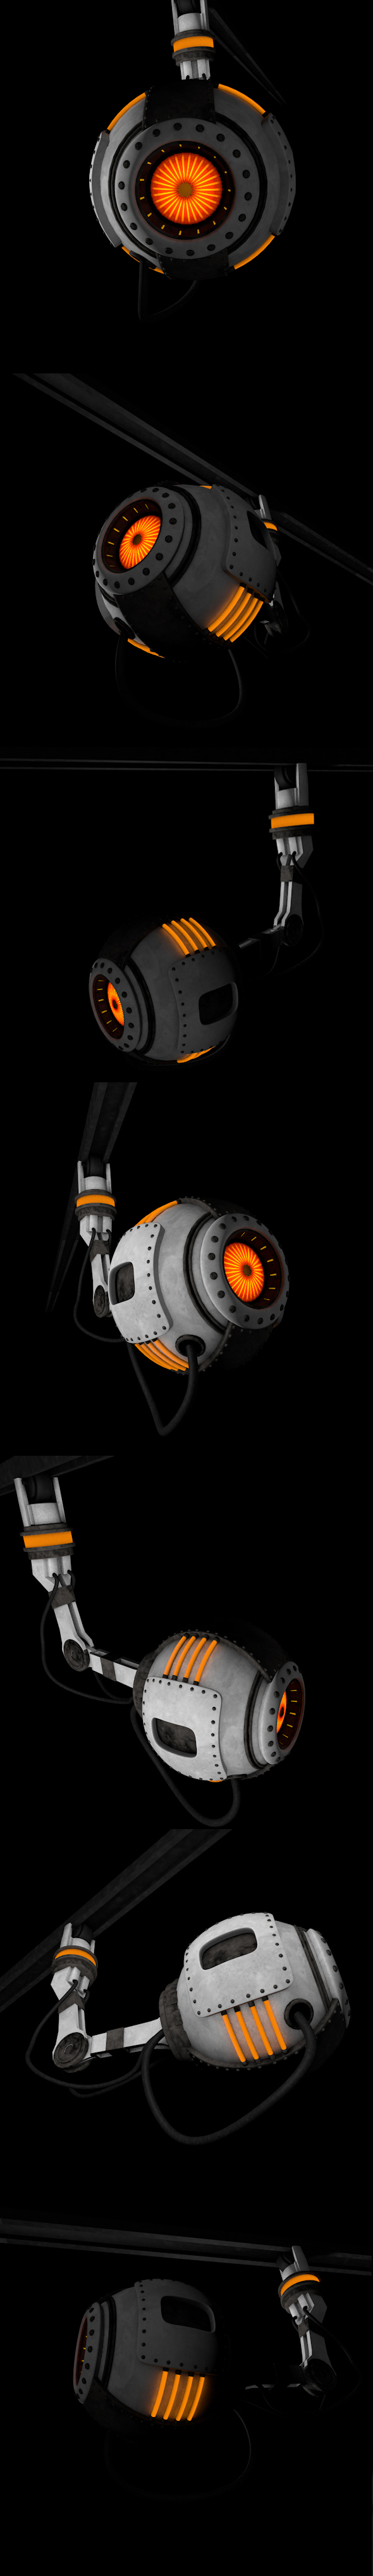 Wheatley (Portal) Full textures - 3DOcean Item for Sale